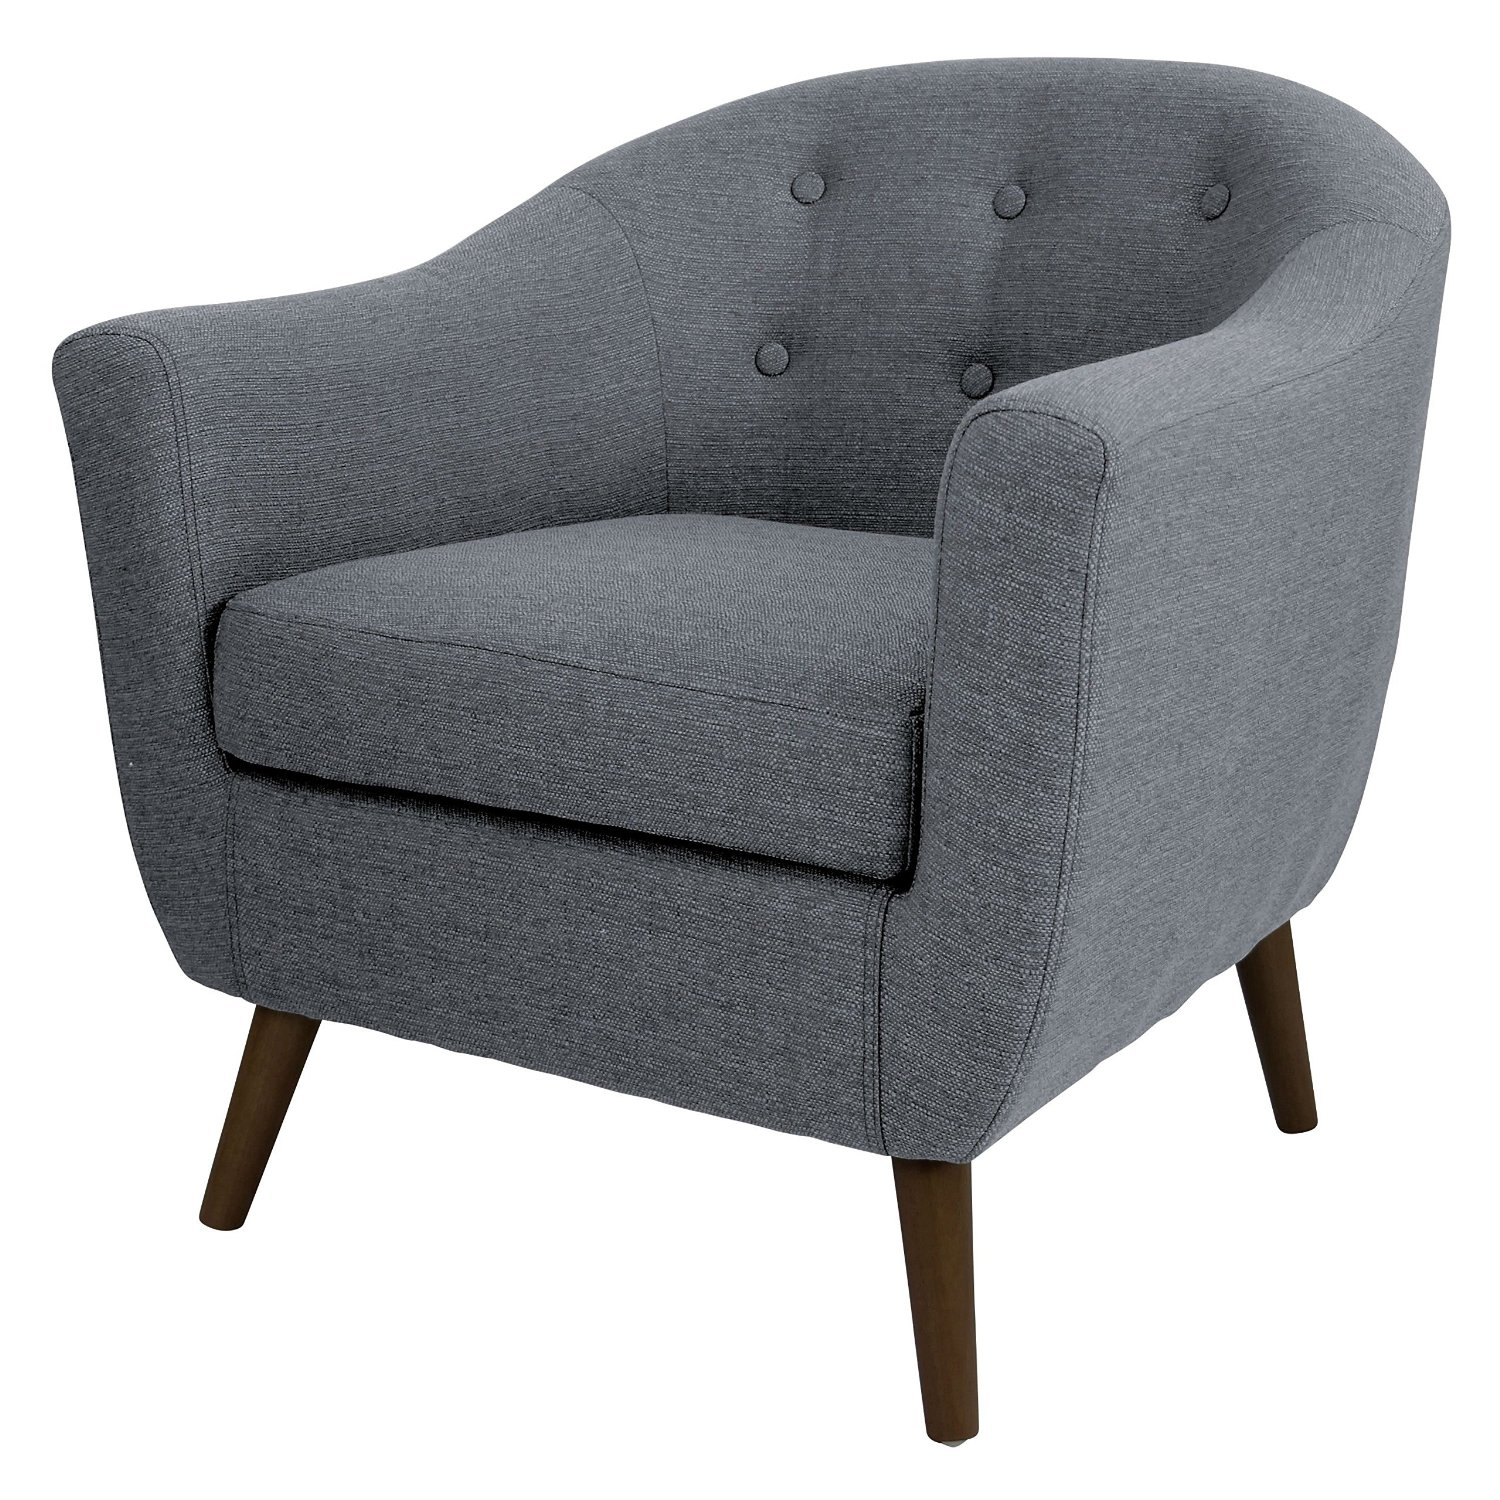 Superbe Get Quotations · Tufted Accent Armchair Made Of Modern Grey Upholstery  Woven Fabric. This Retro Club Chair Adds